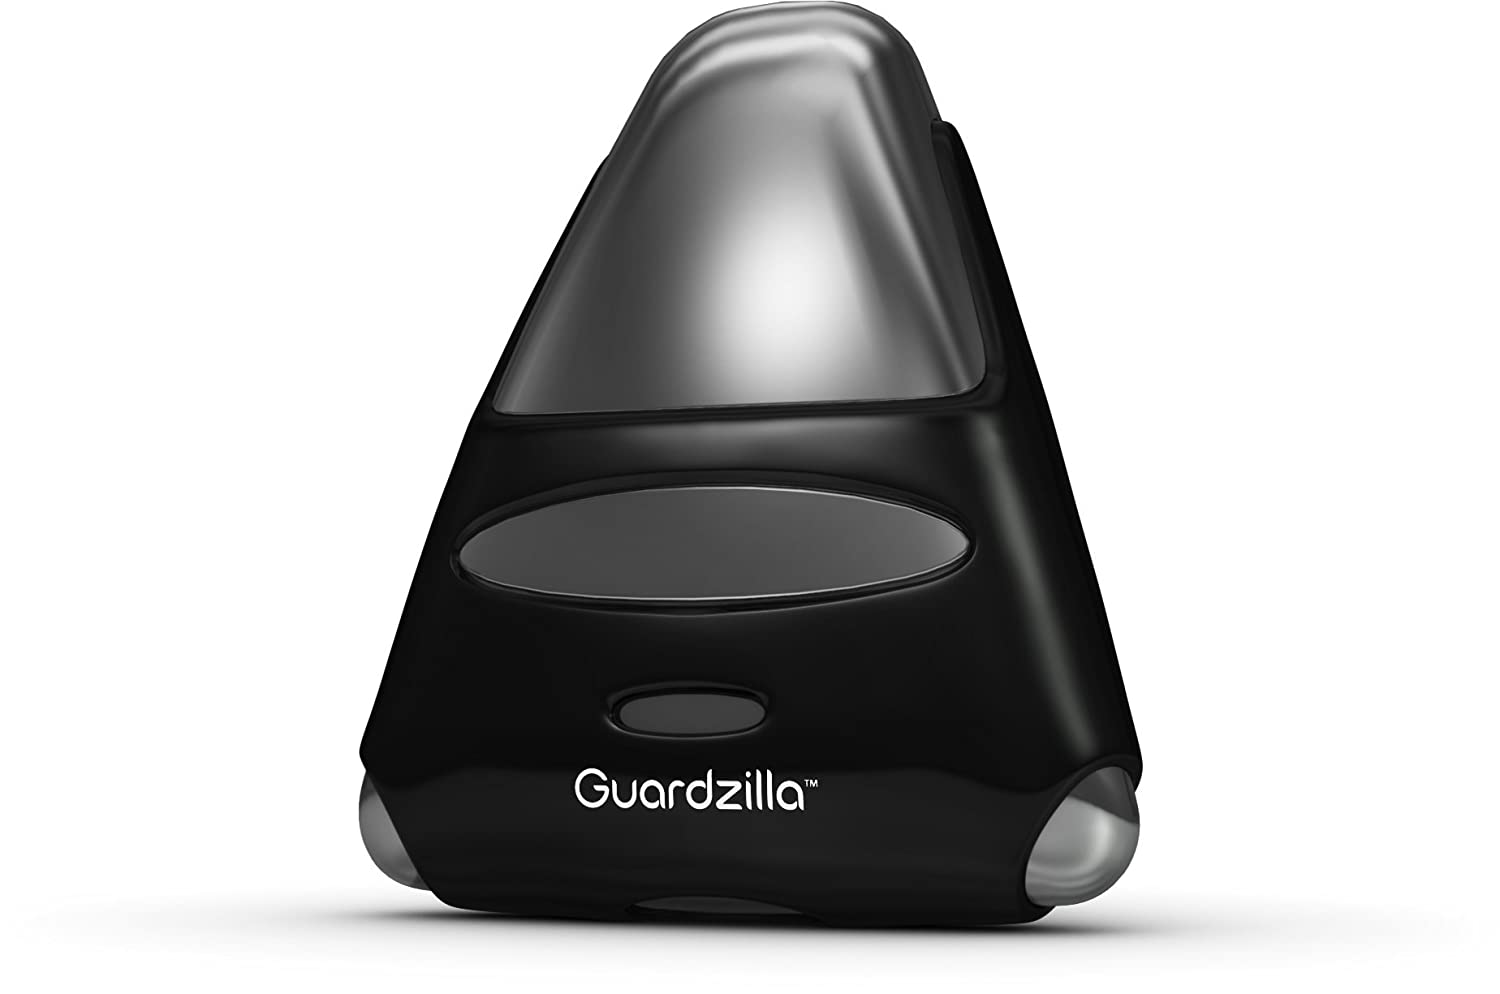 Piano Black Guardzilla GZ601B All-In-One Smart alarm and Video Security System